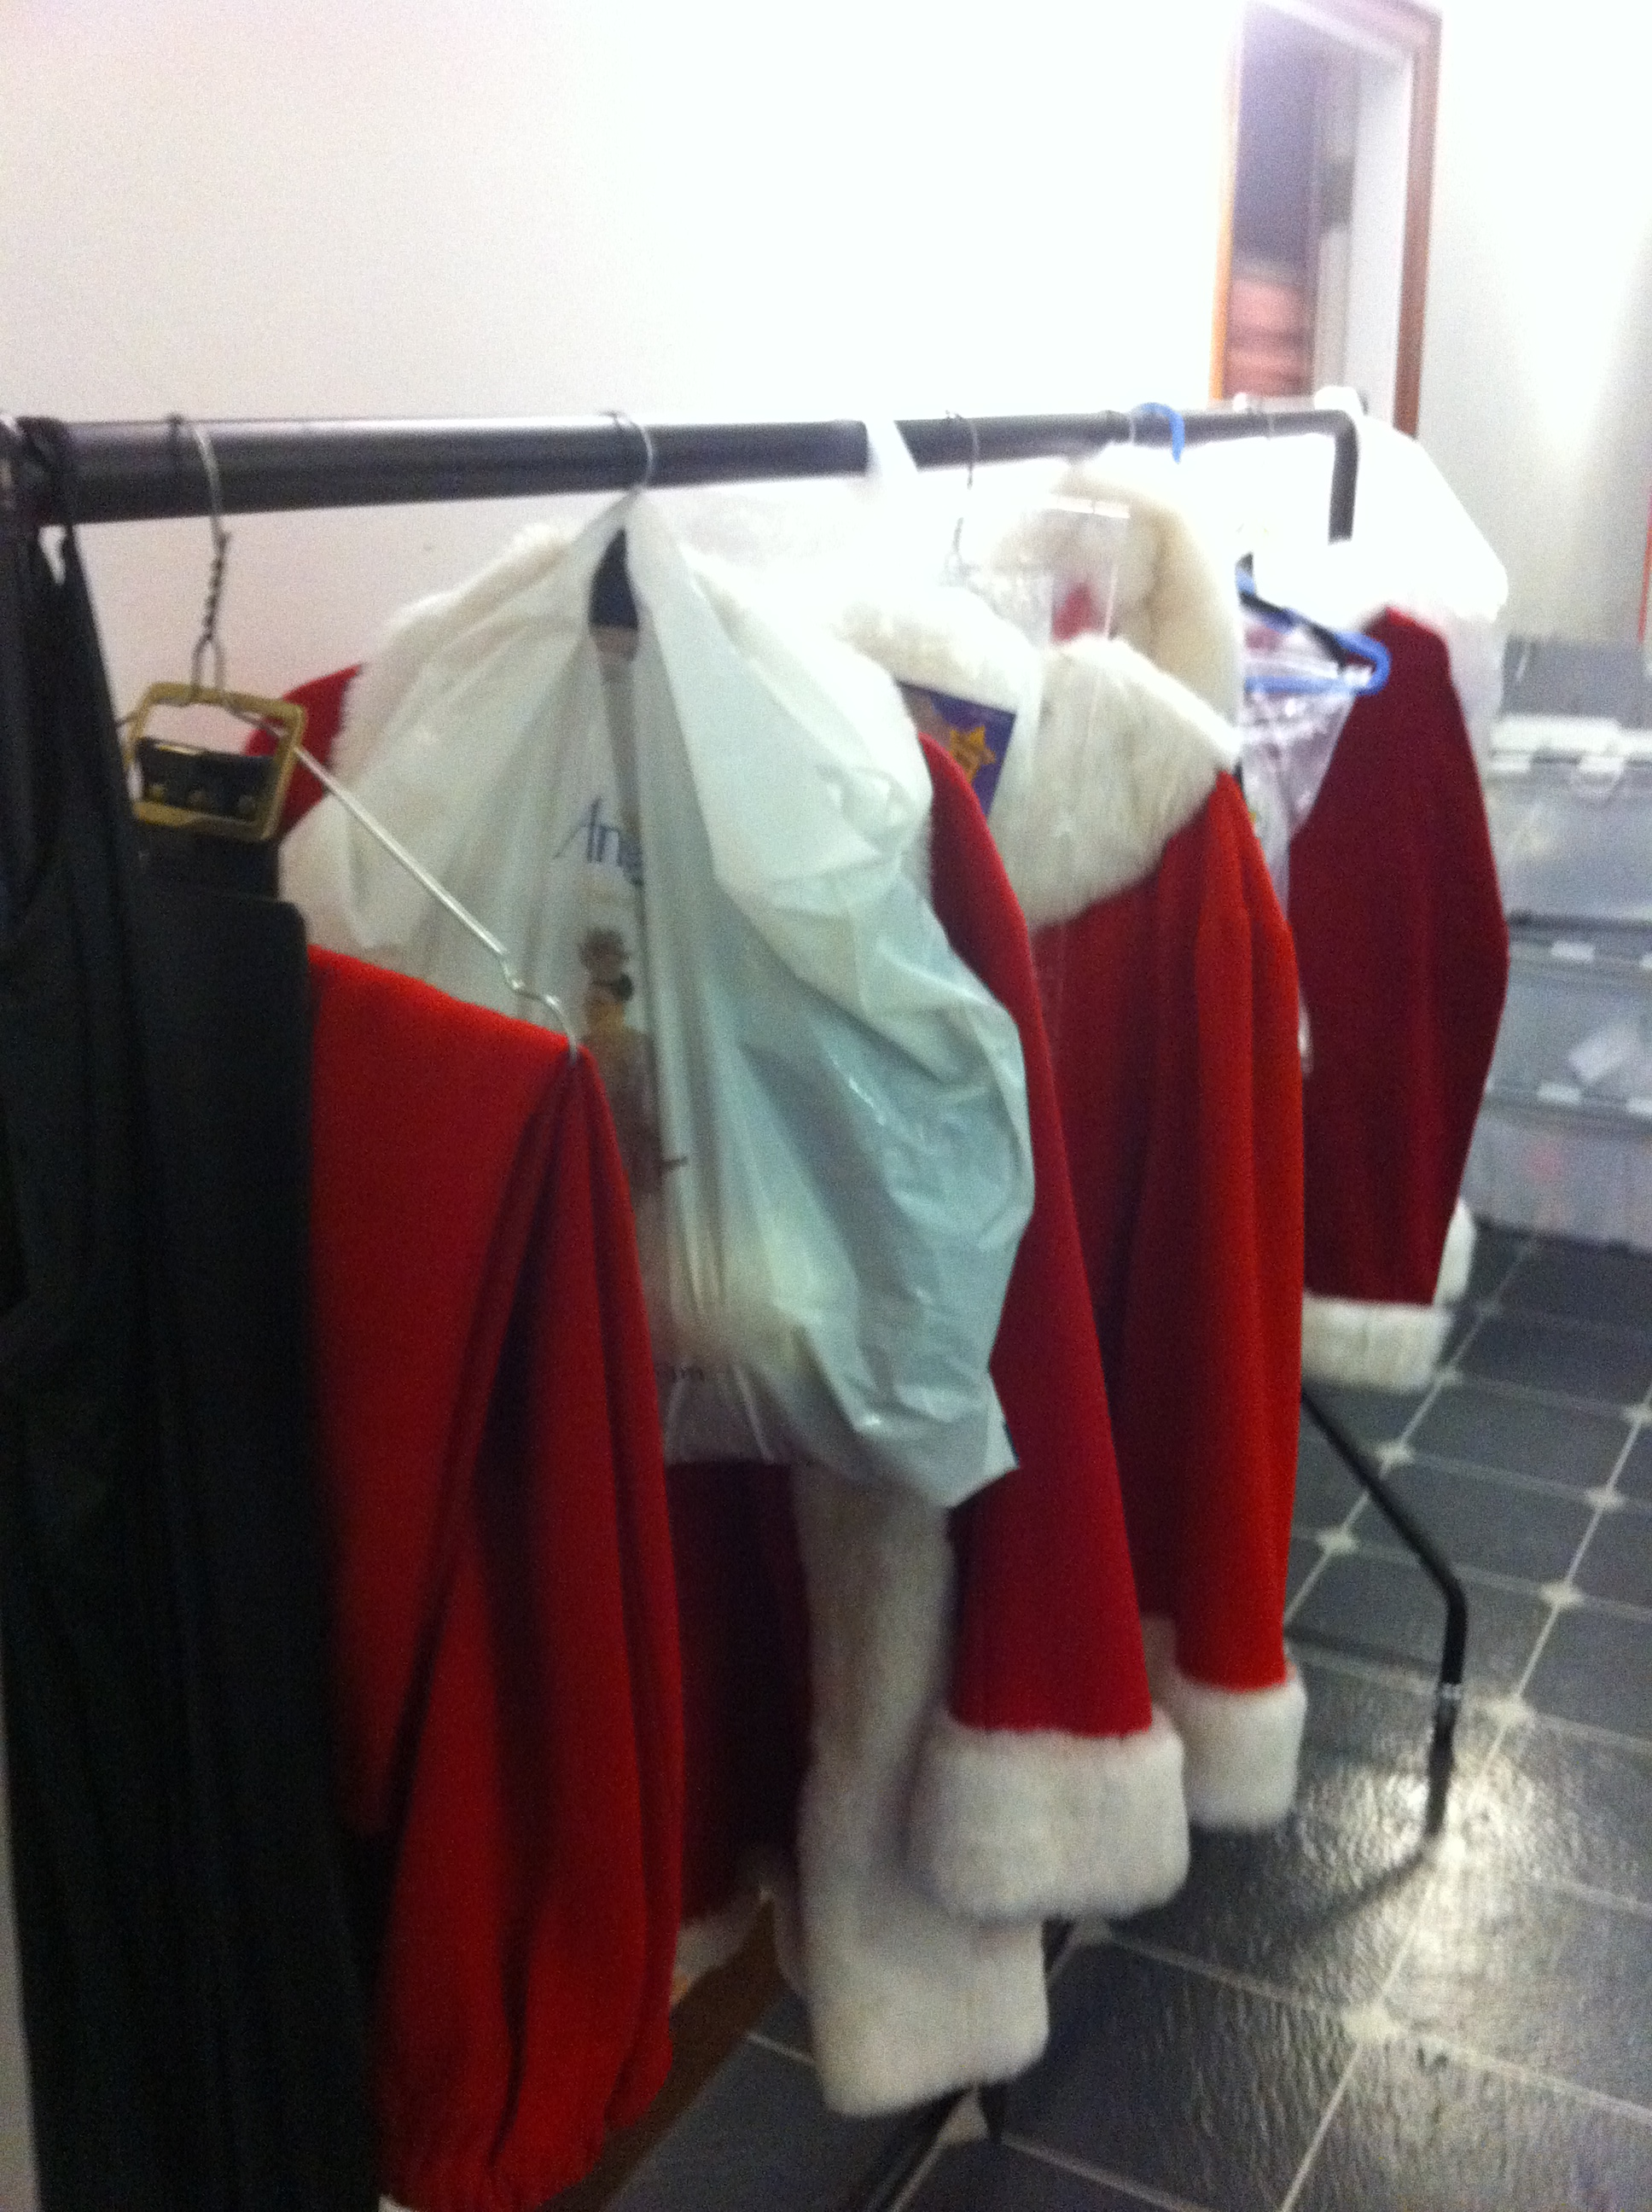 Santa costumes backstage at Strictly